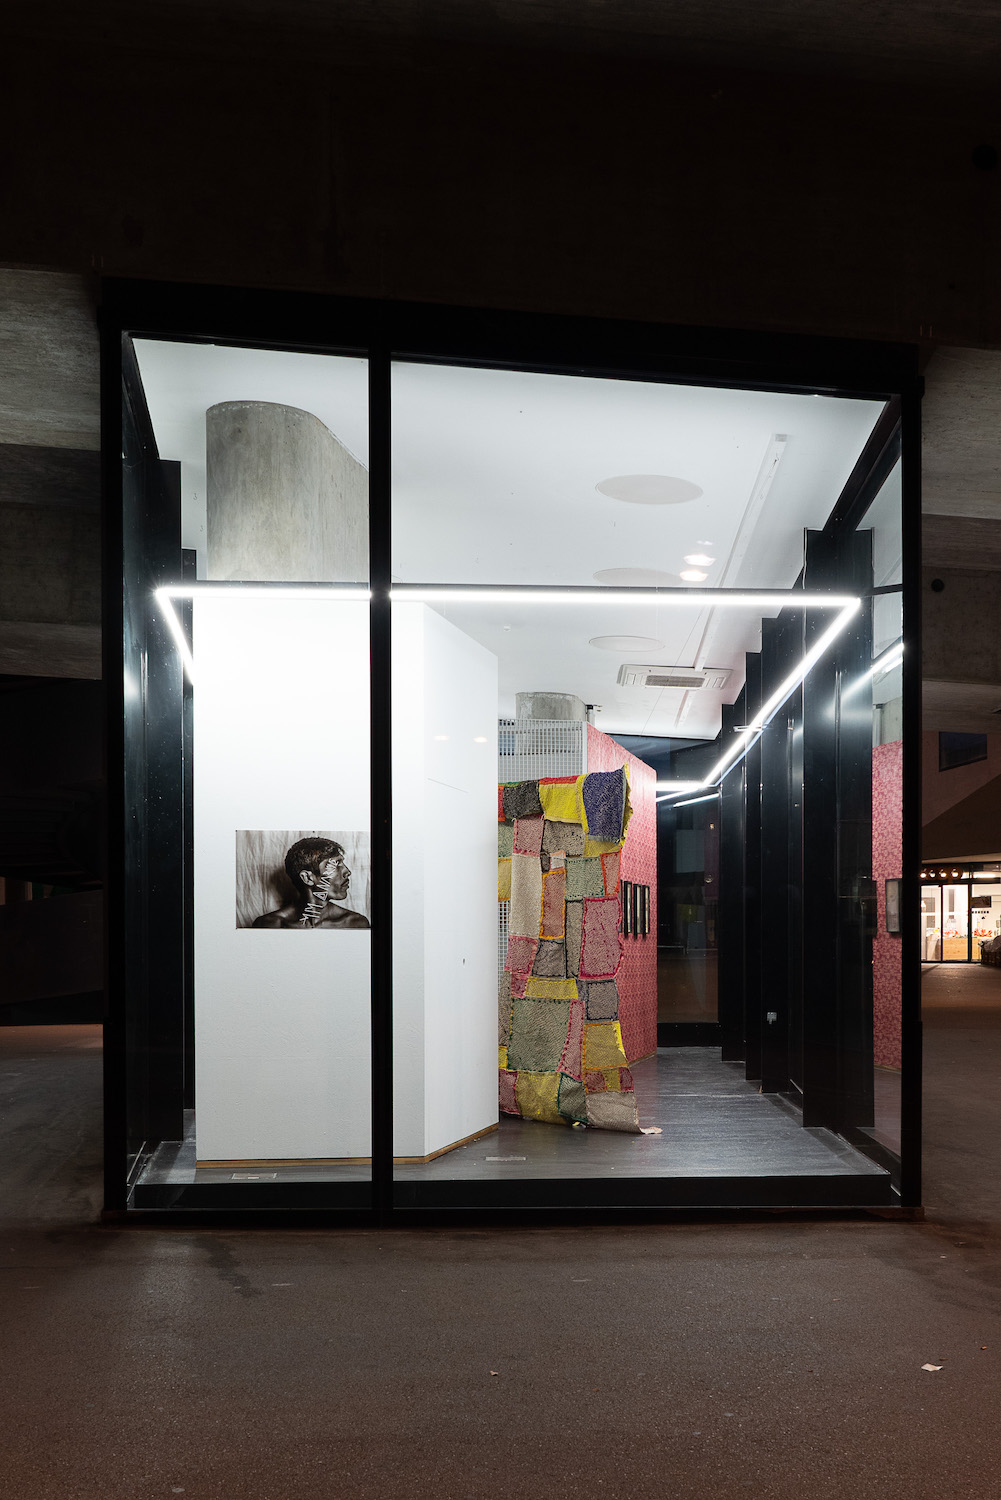 Ashfika Rahman, The typology of wounds, the mapping of healing, 2021. Installation view. VITRINE, Basel. Photographer: Marcel Scheible.